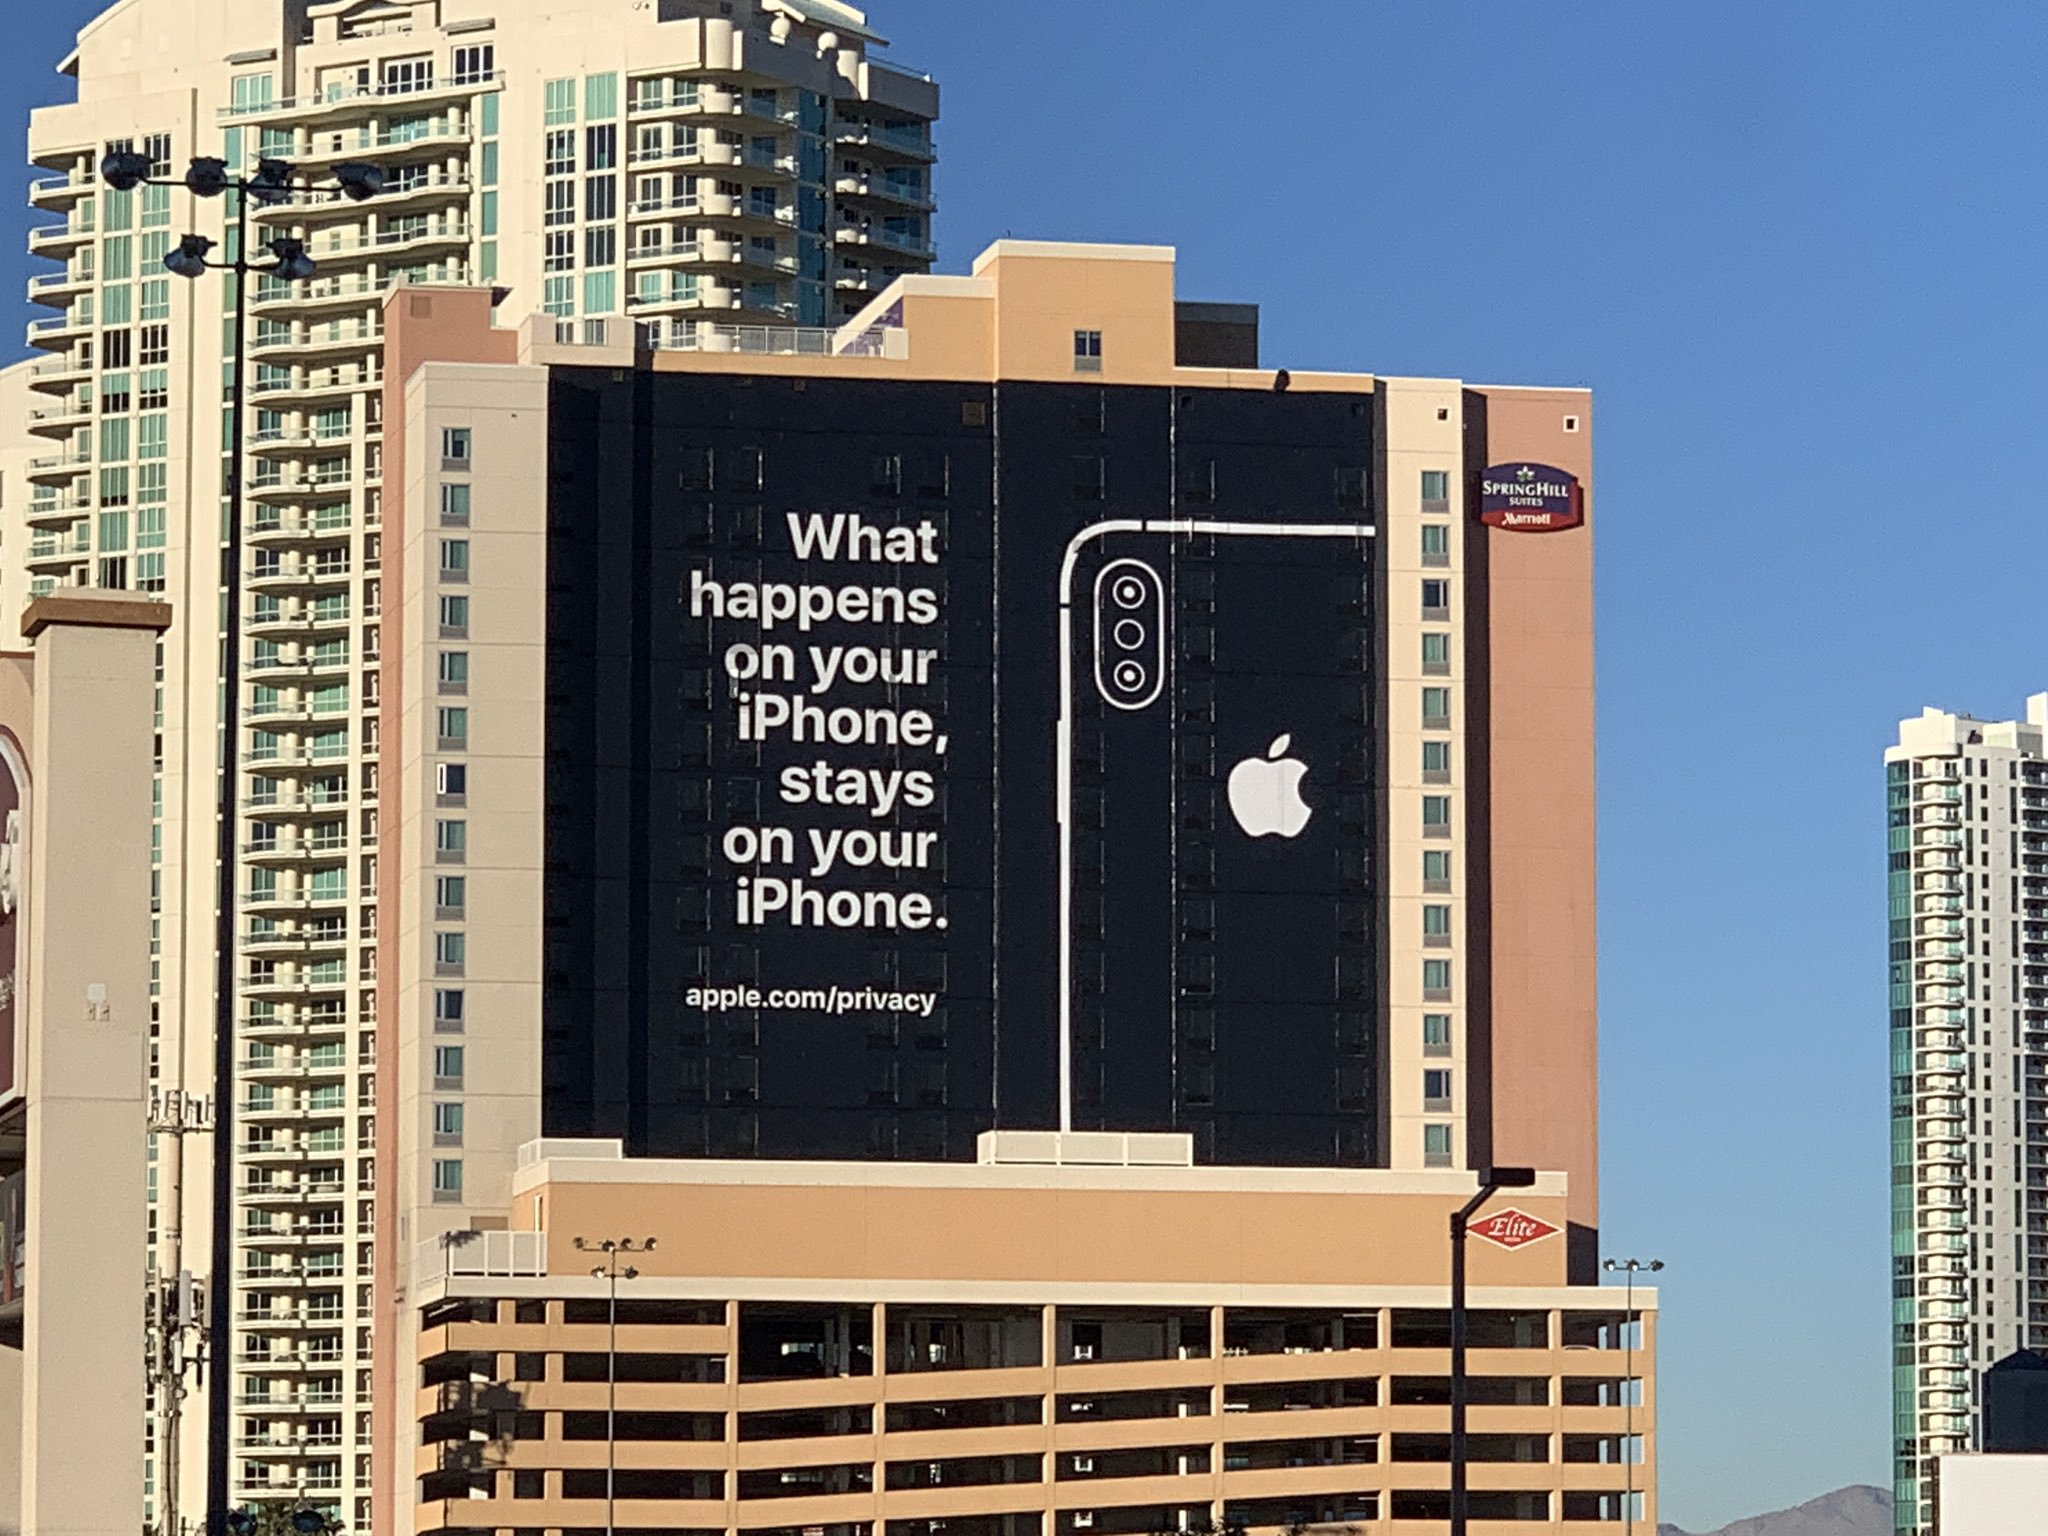 Apple hits Google and Facebook with savage burn at CES 2018 (Picture: Chris Velazco/Twitter)